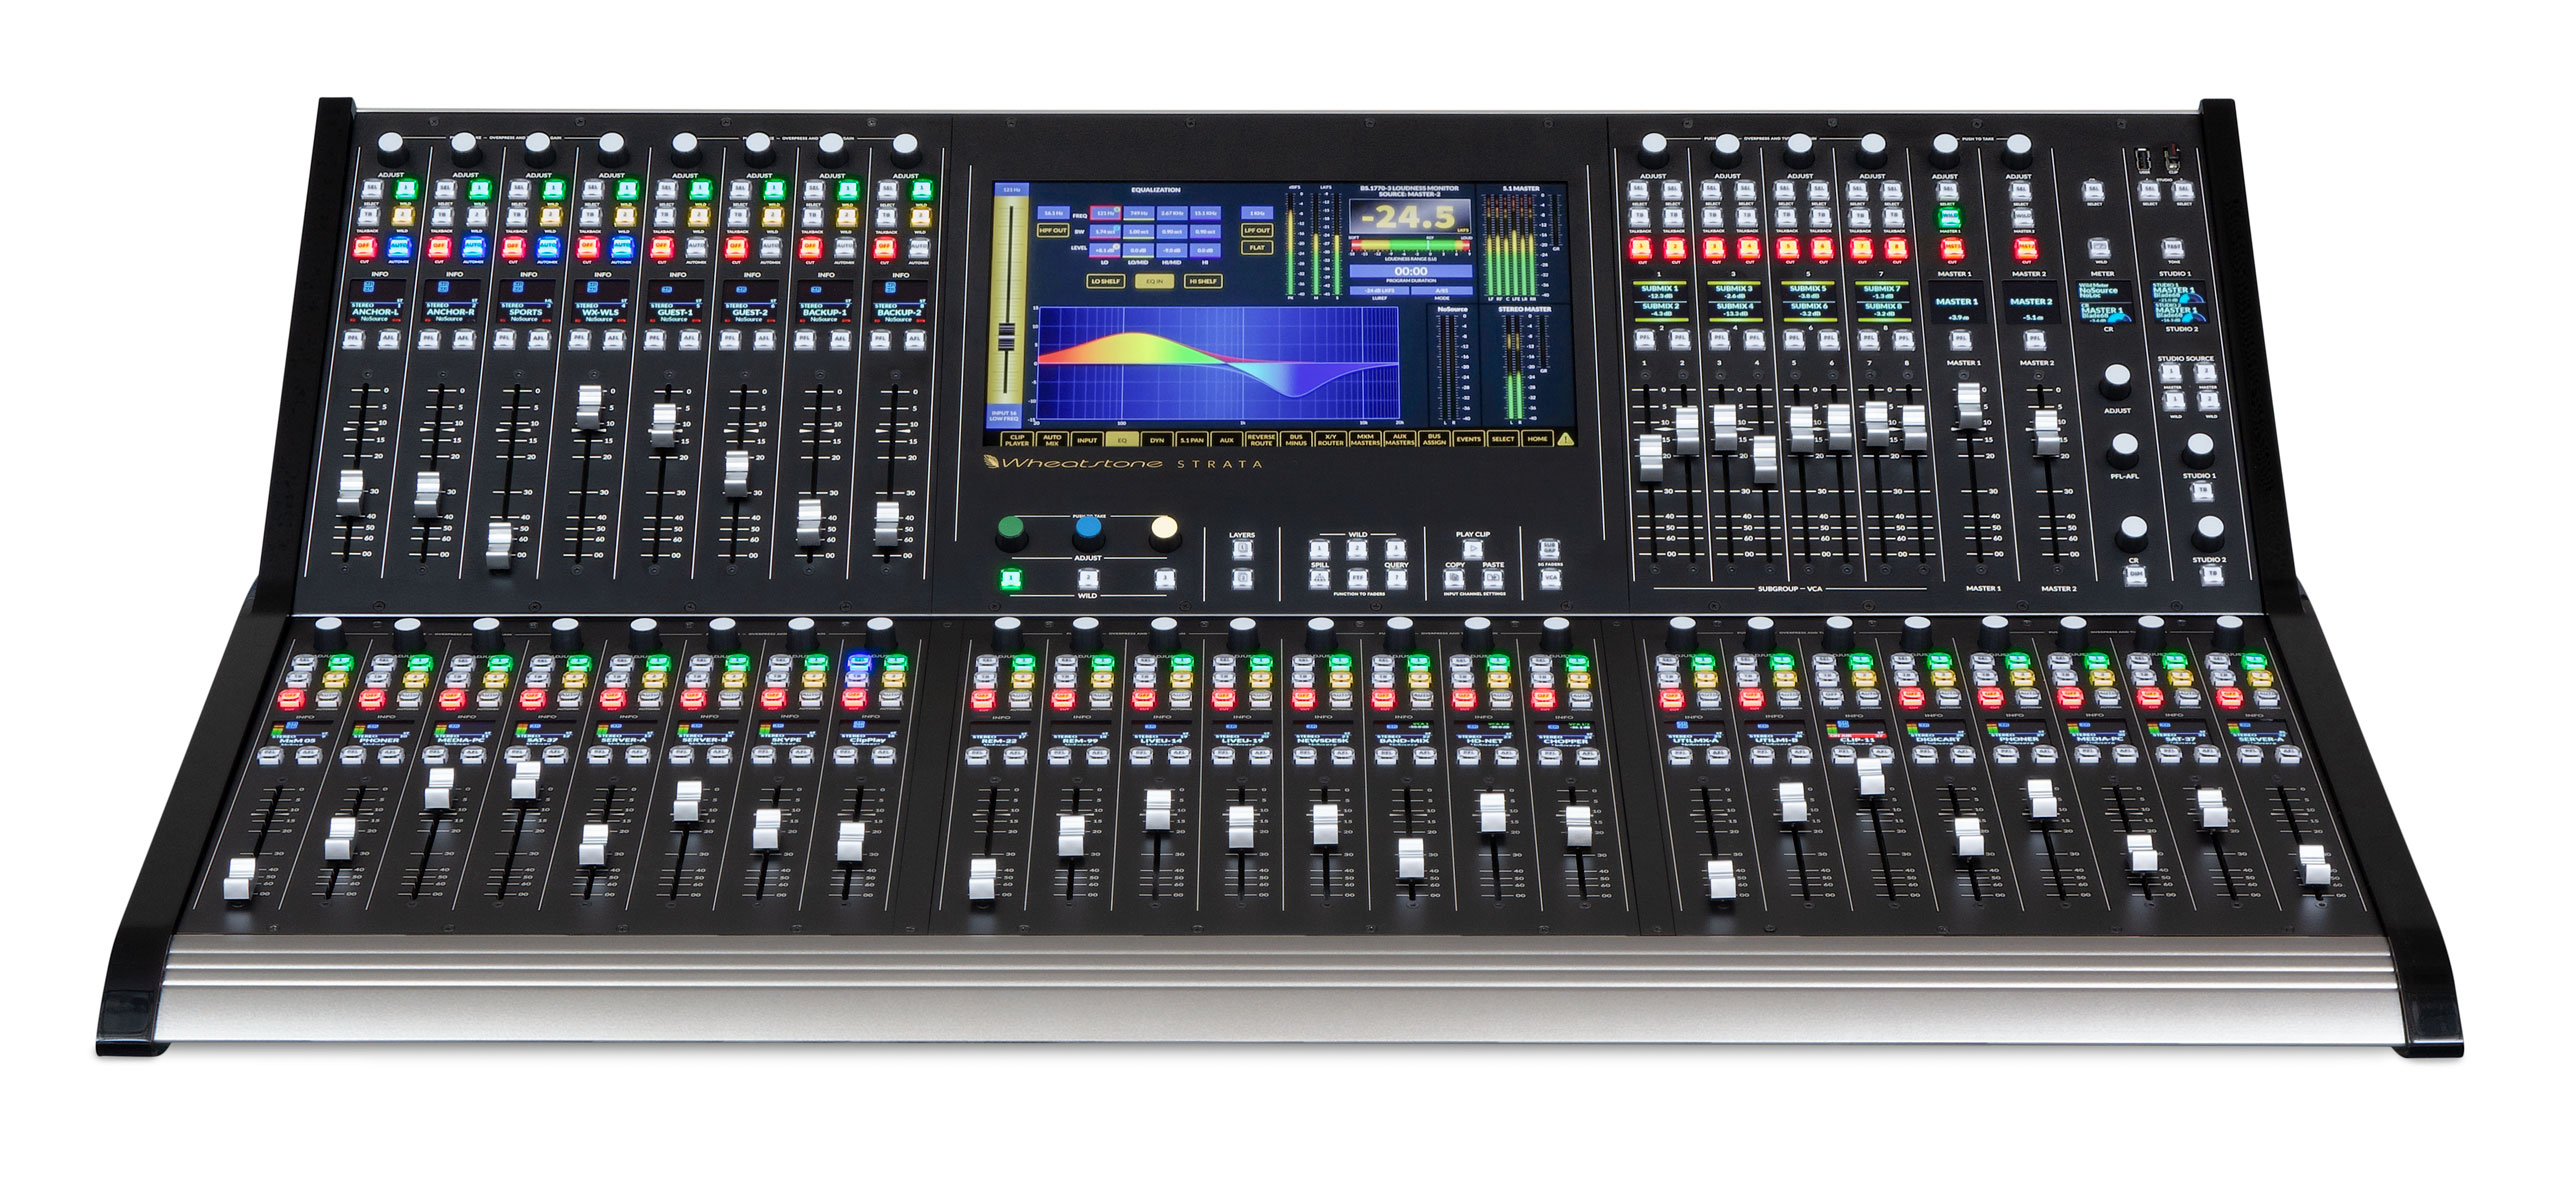 Table De Mixage Video Wheatstone Audio For Radio And Television Broadcasting